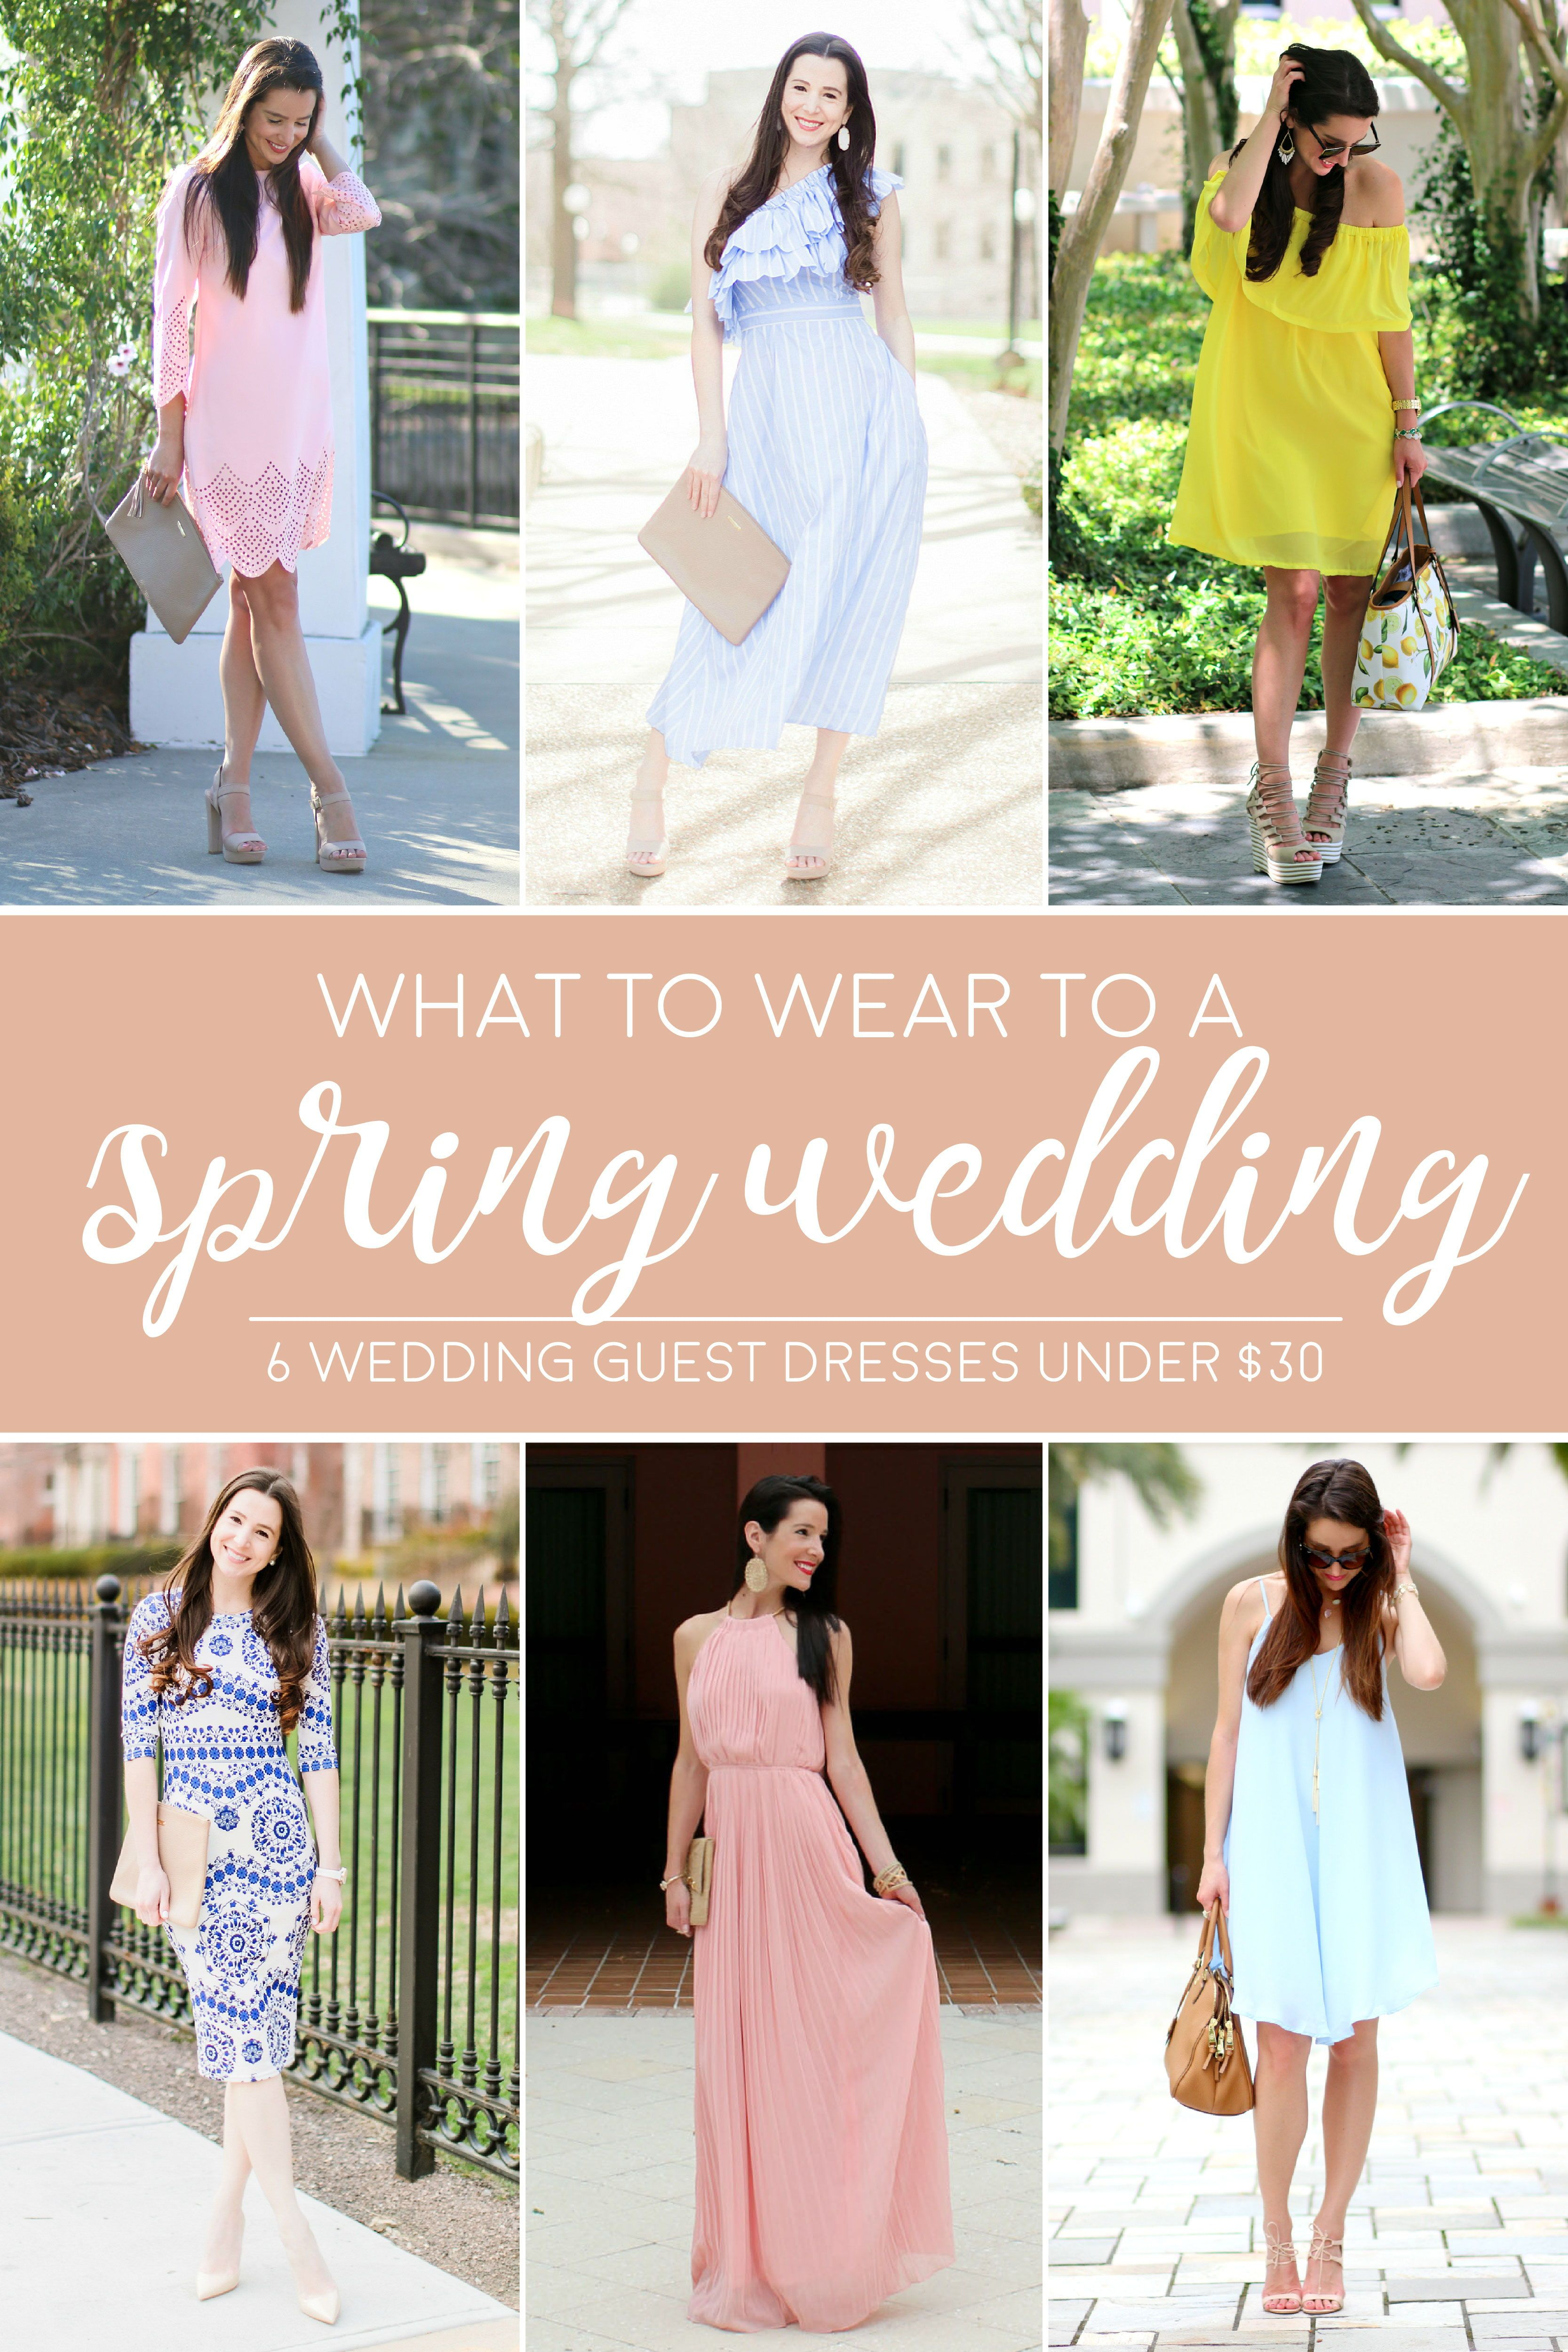 Wedding attendee dresses  Best Dresses to Wear to a Spring Wedding